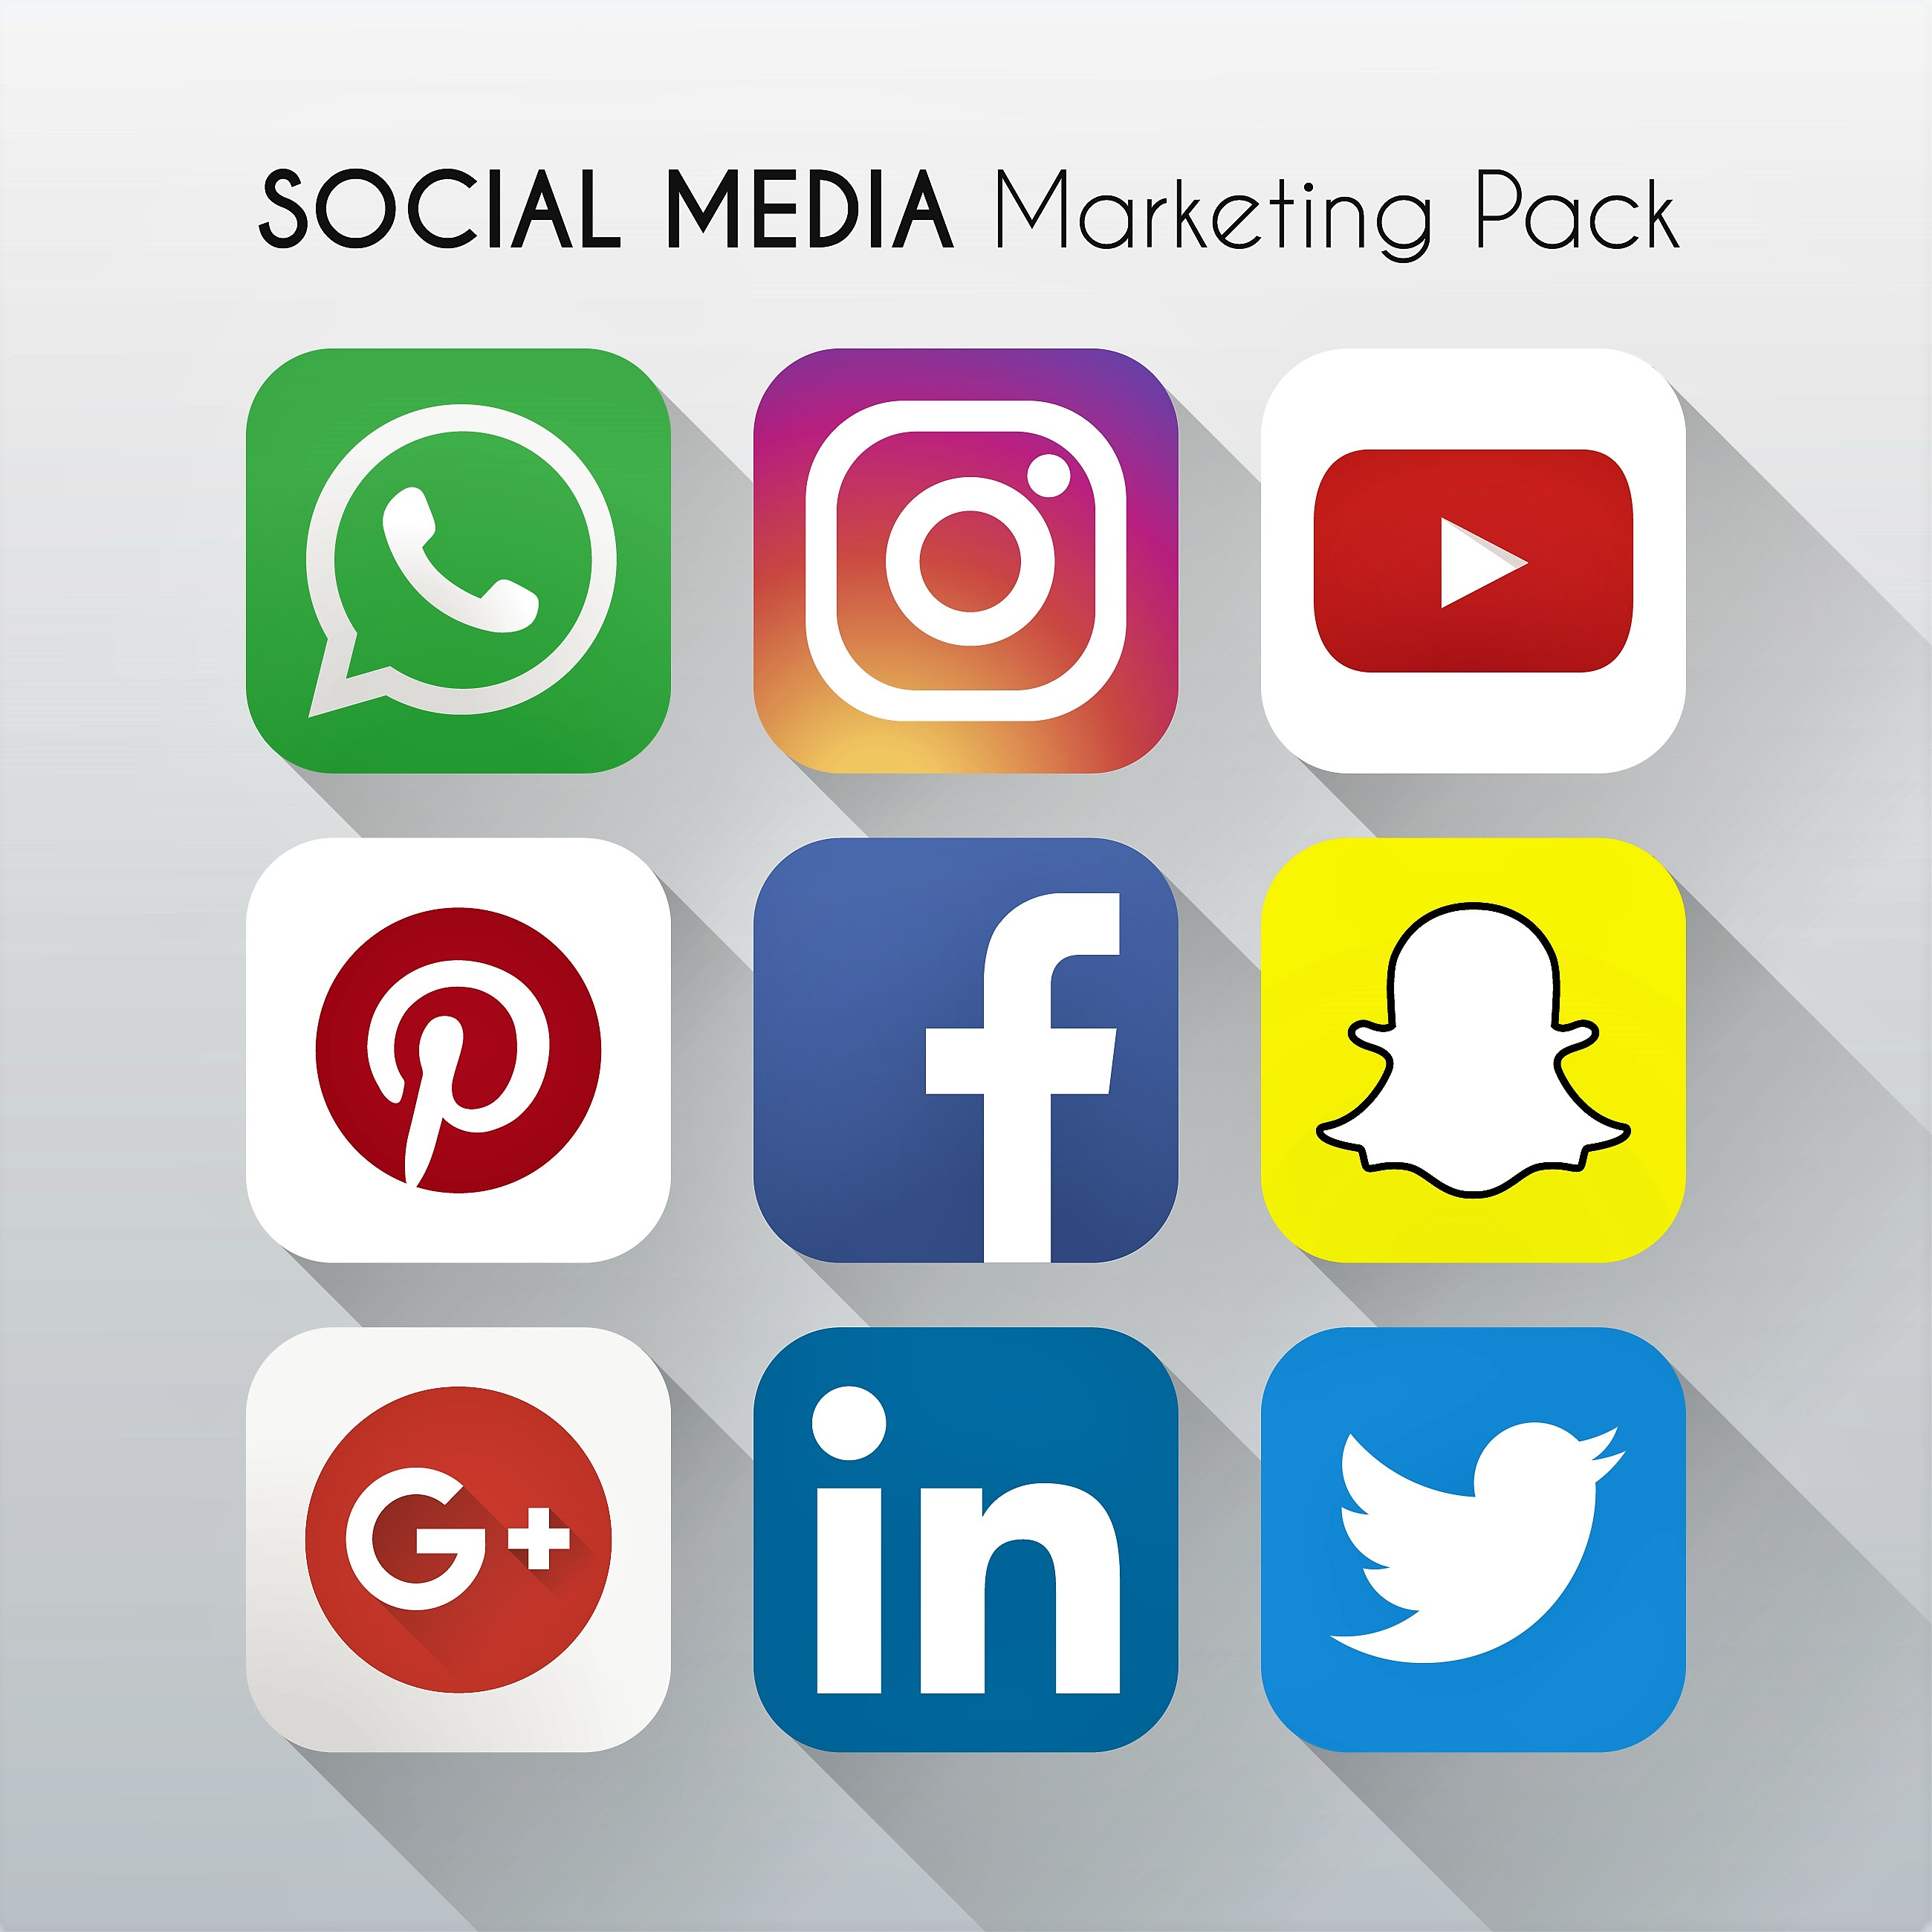 What-is-Social-Media-Marketing-The-Rise-of-Social-Media-Marketing-.jpg